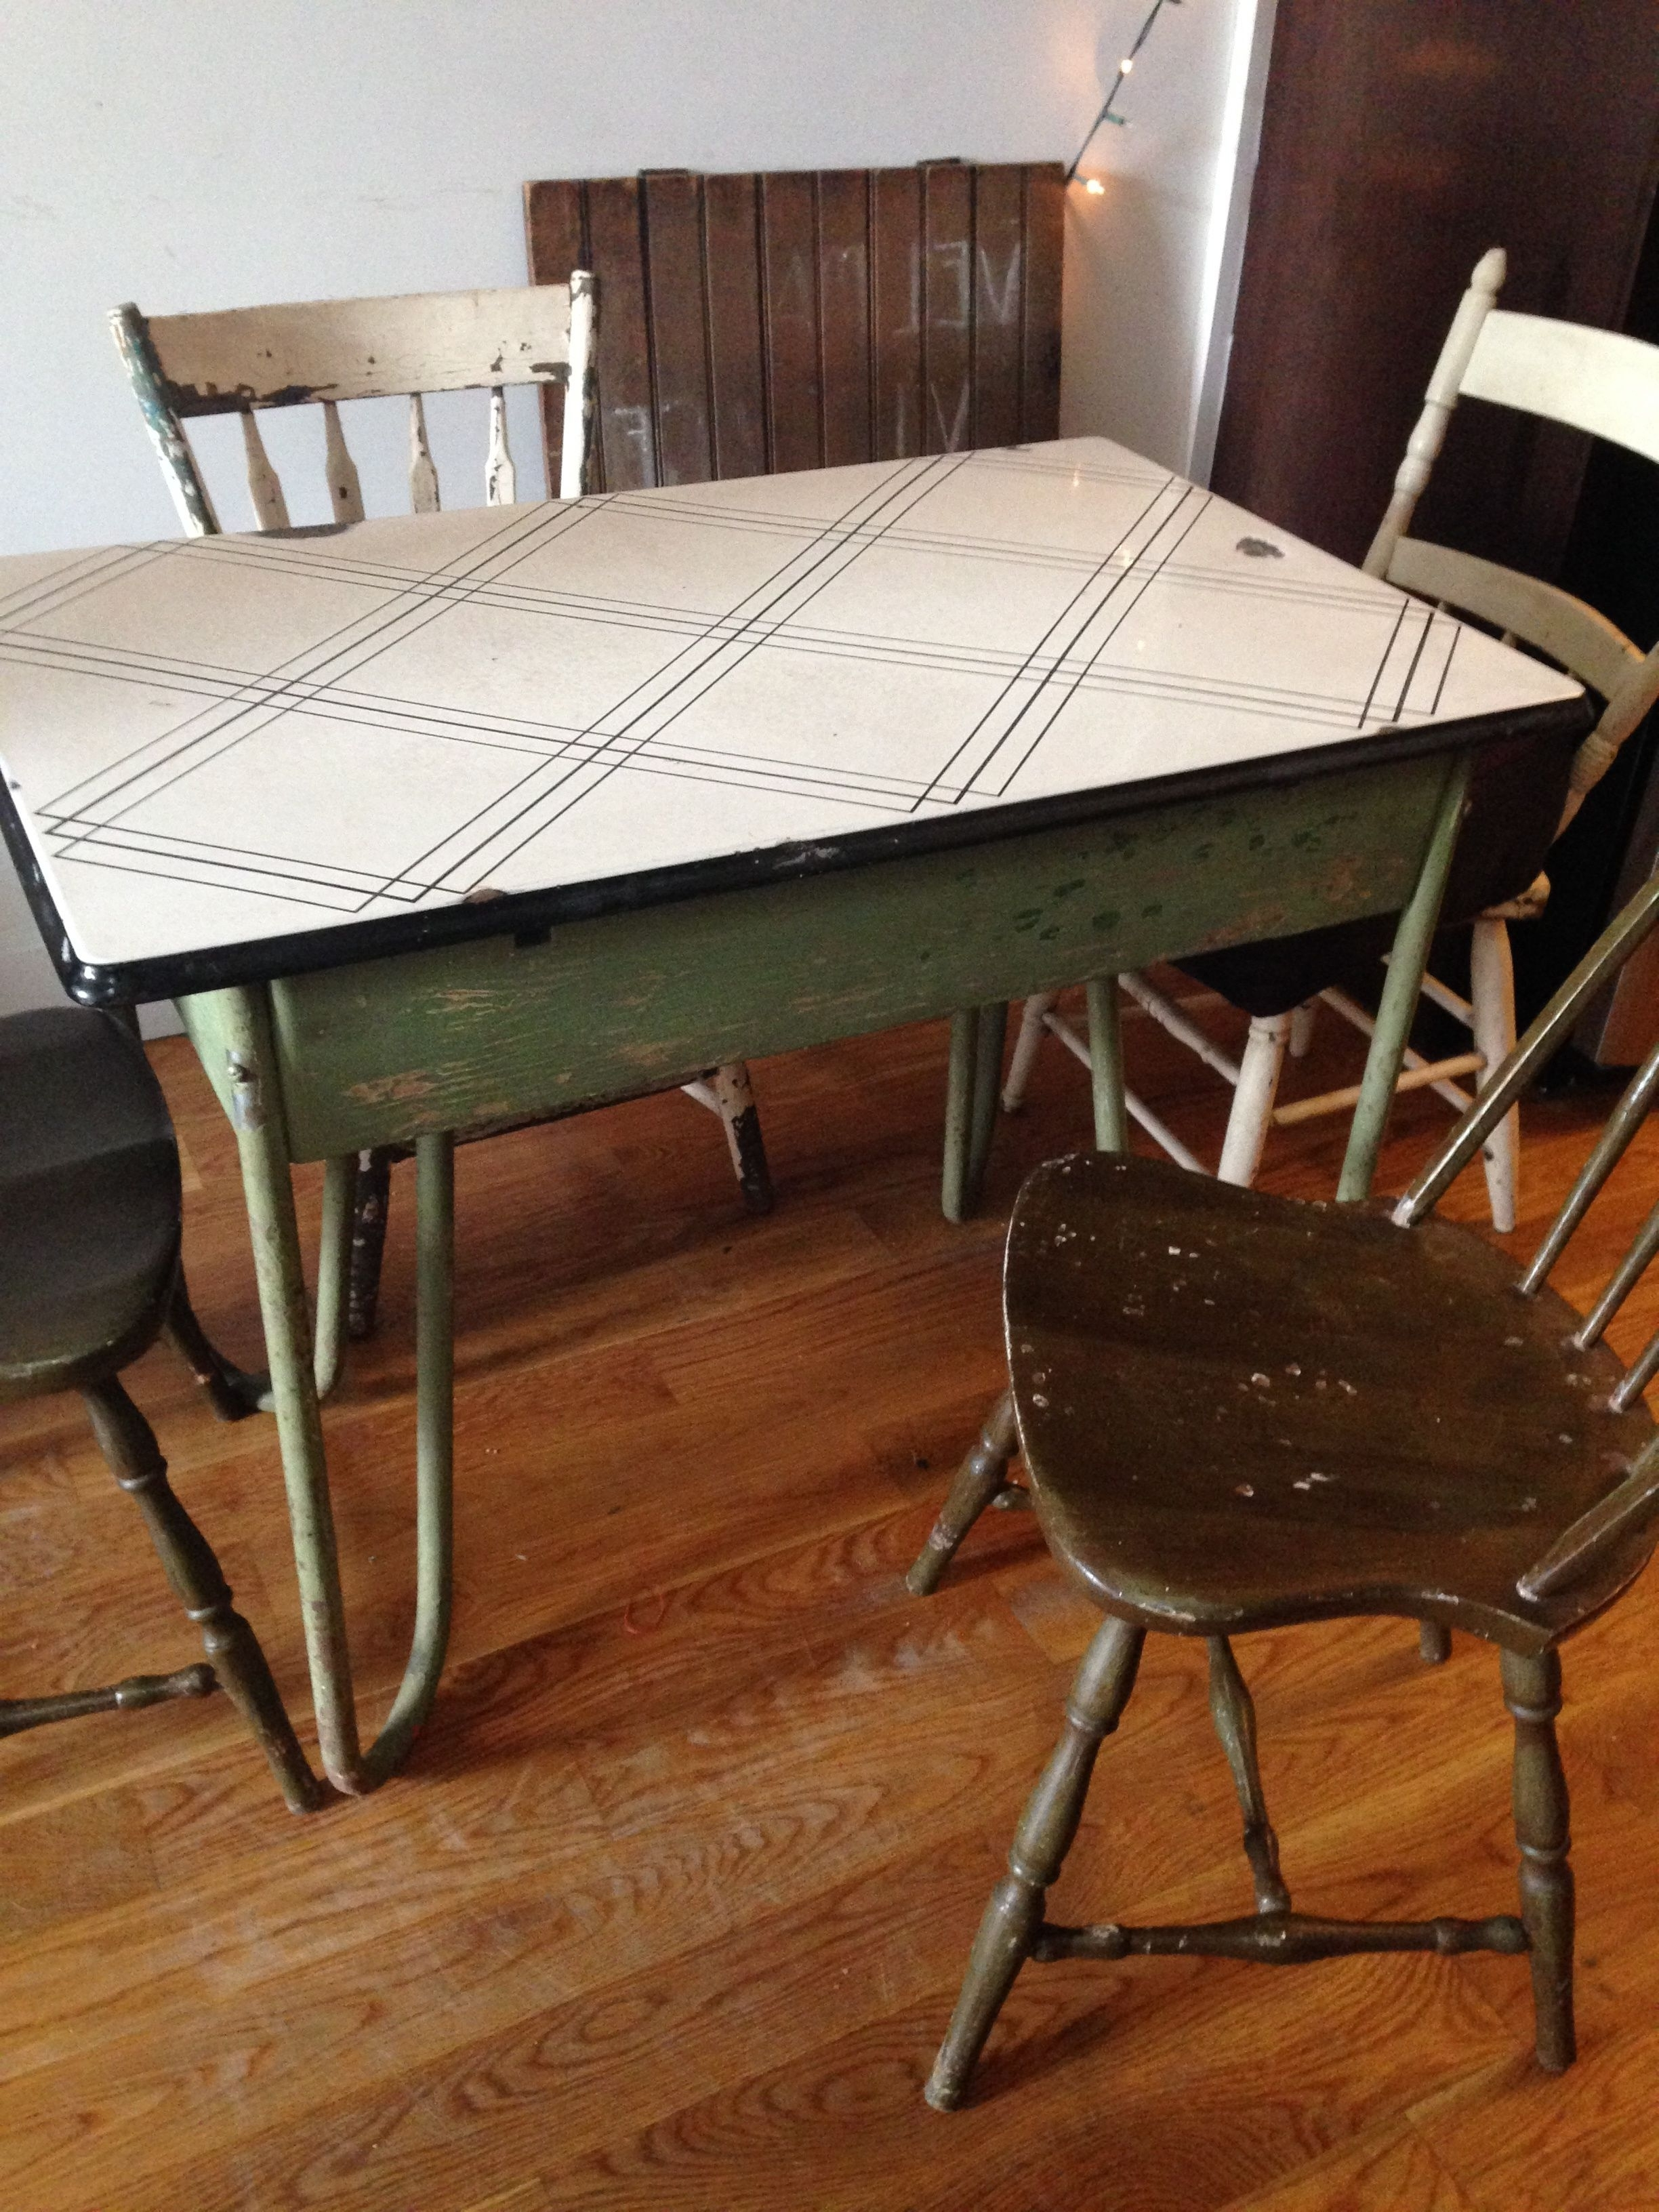 Trendy Half Moon Kitchen Table Awesome Half Moon Dining Table Image Within Round Half Moon Dining Tables (View 2 of 25)